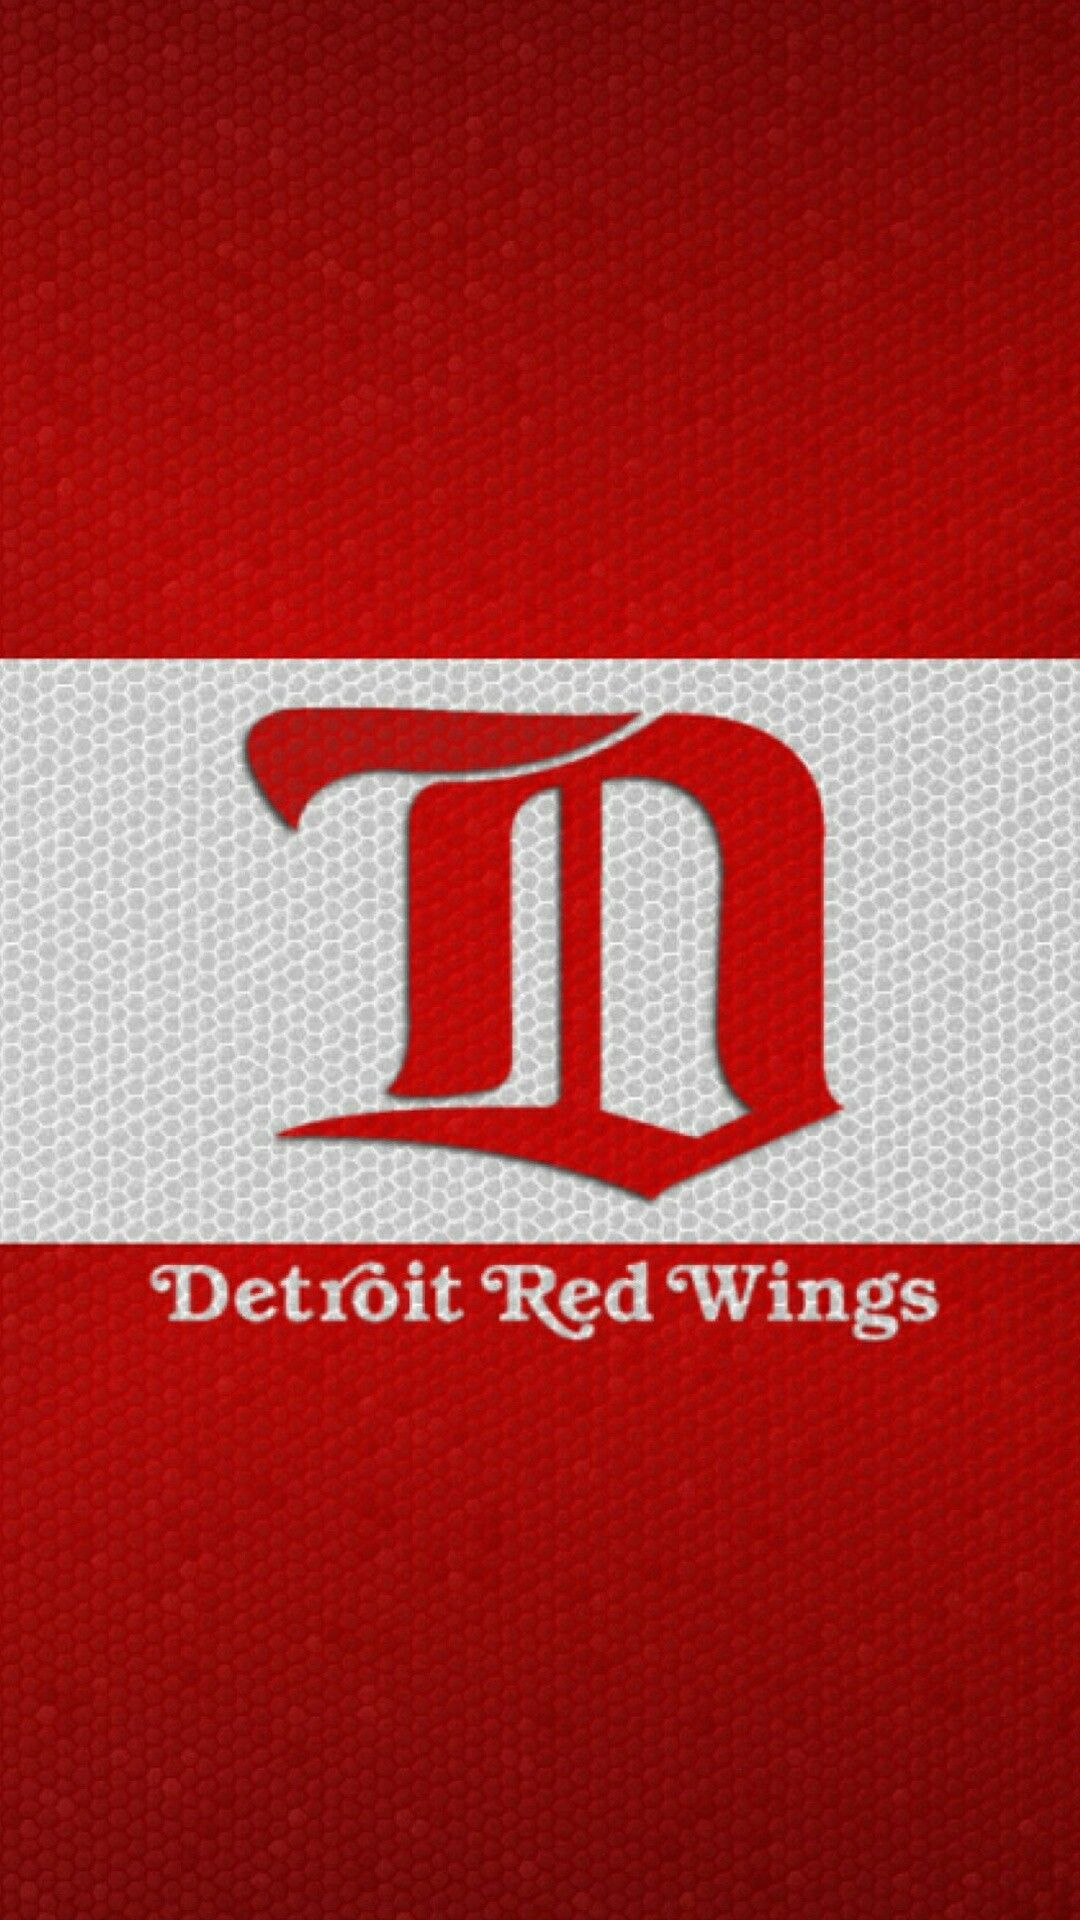 Detroit Red Wings Detroit Red Wings 1cce4f8d8